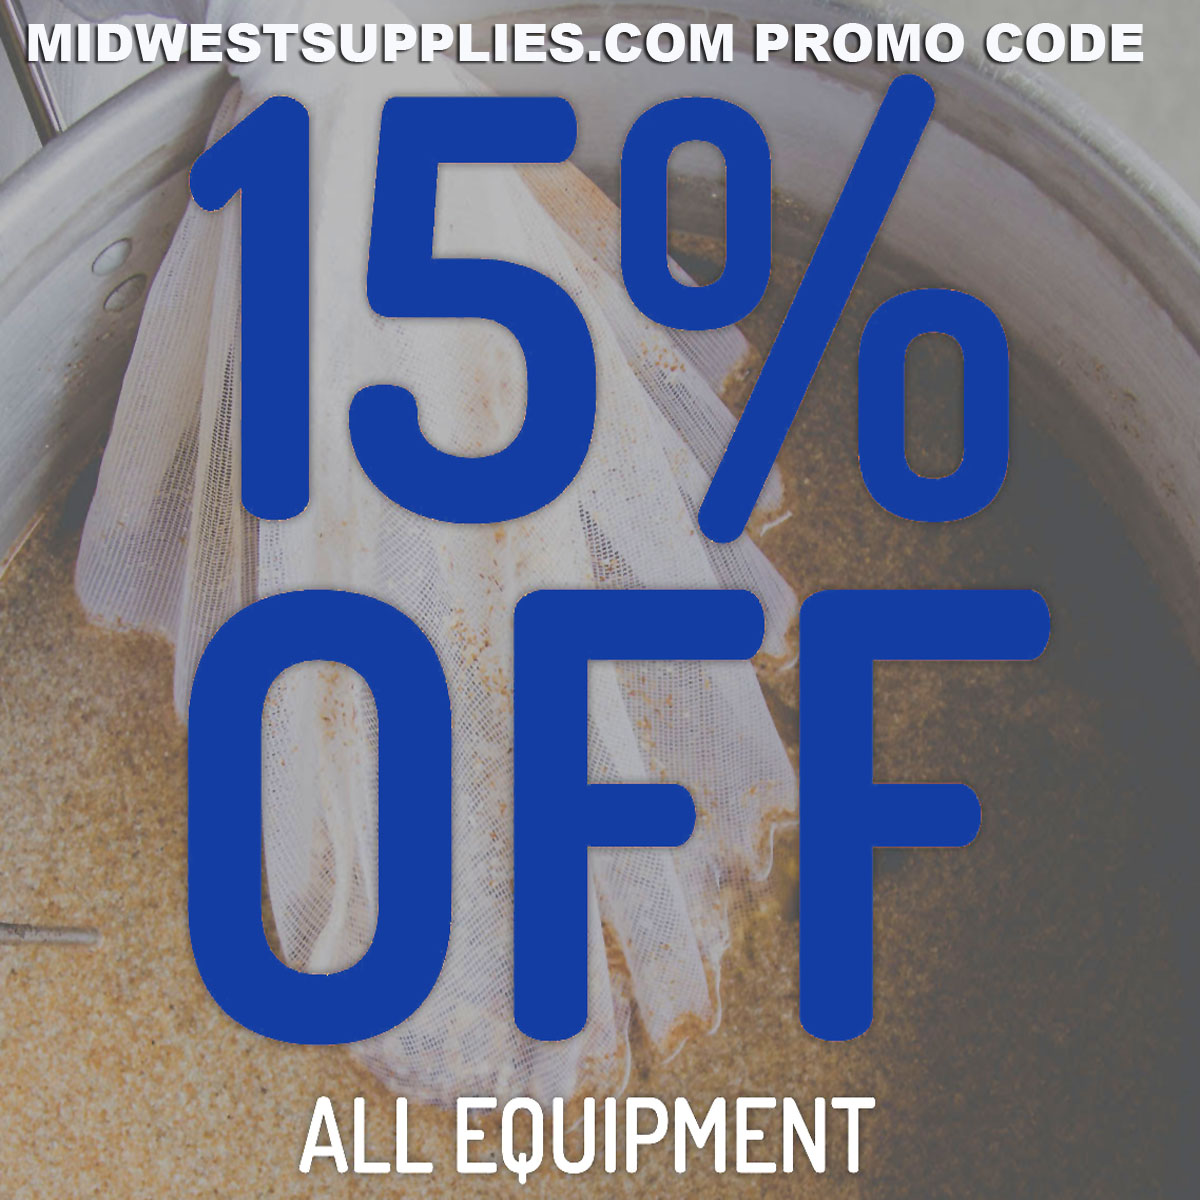 Midwest Supplies Save 15% on Home Brewing Equipment with this midwestsupplies.com promo code Coupon Code